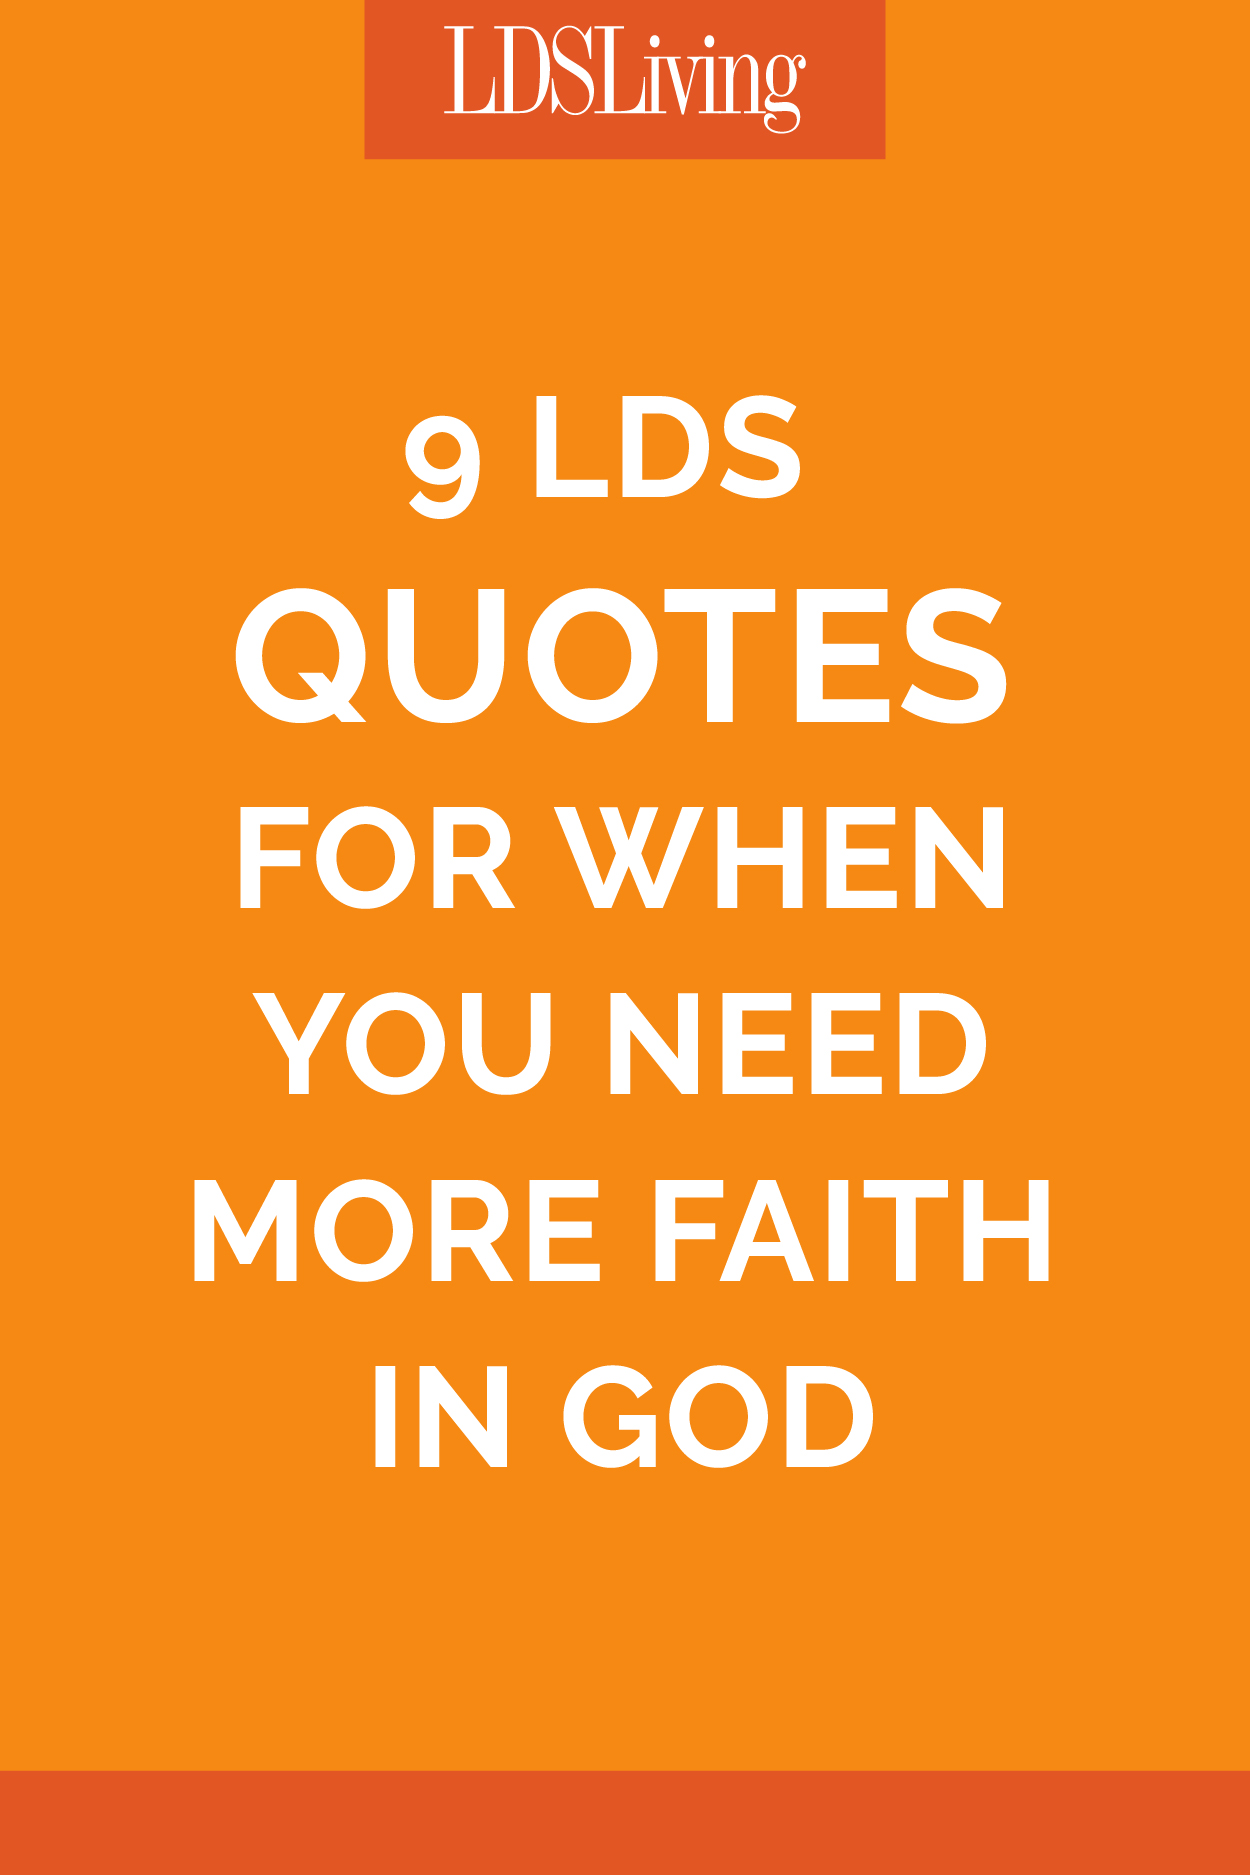 9 LDS Quotes for When You Need More Faith in God